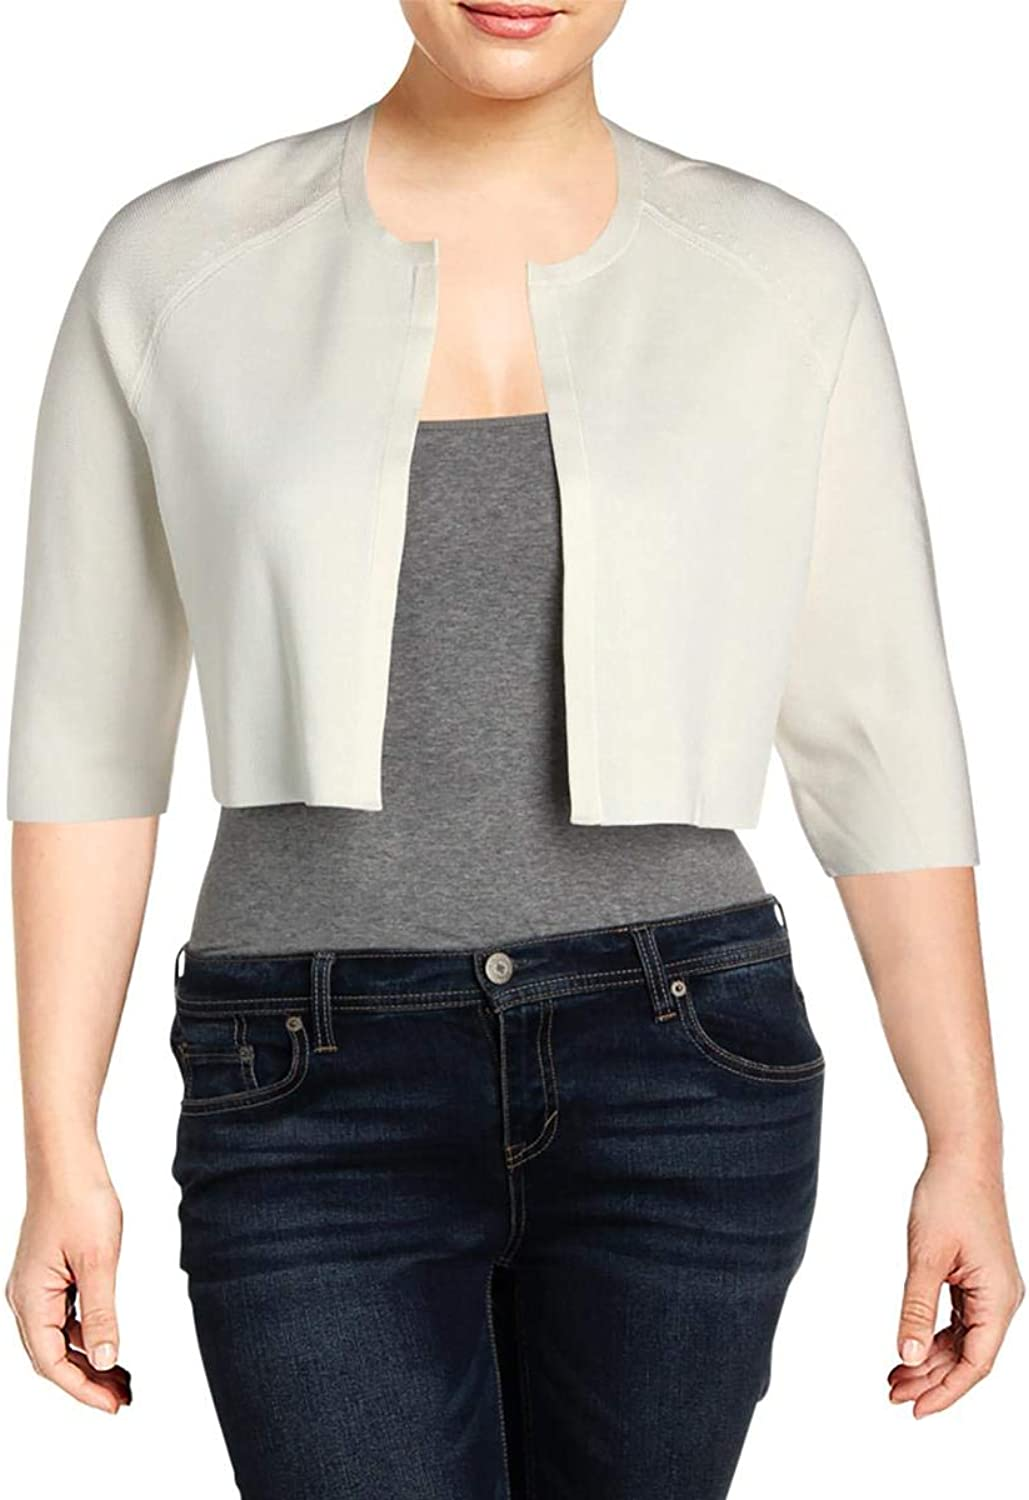 Hugo Boss Womens Crop Open Front Cardigan Sweater